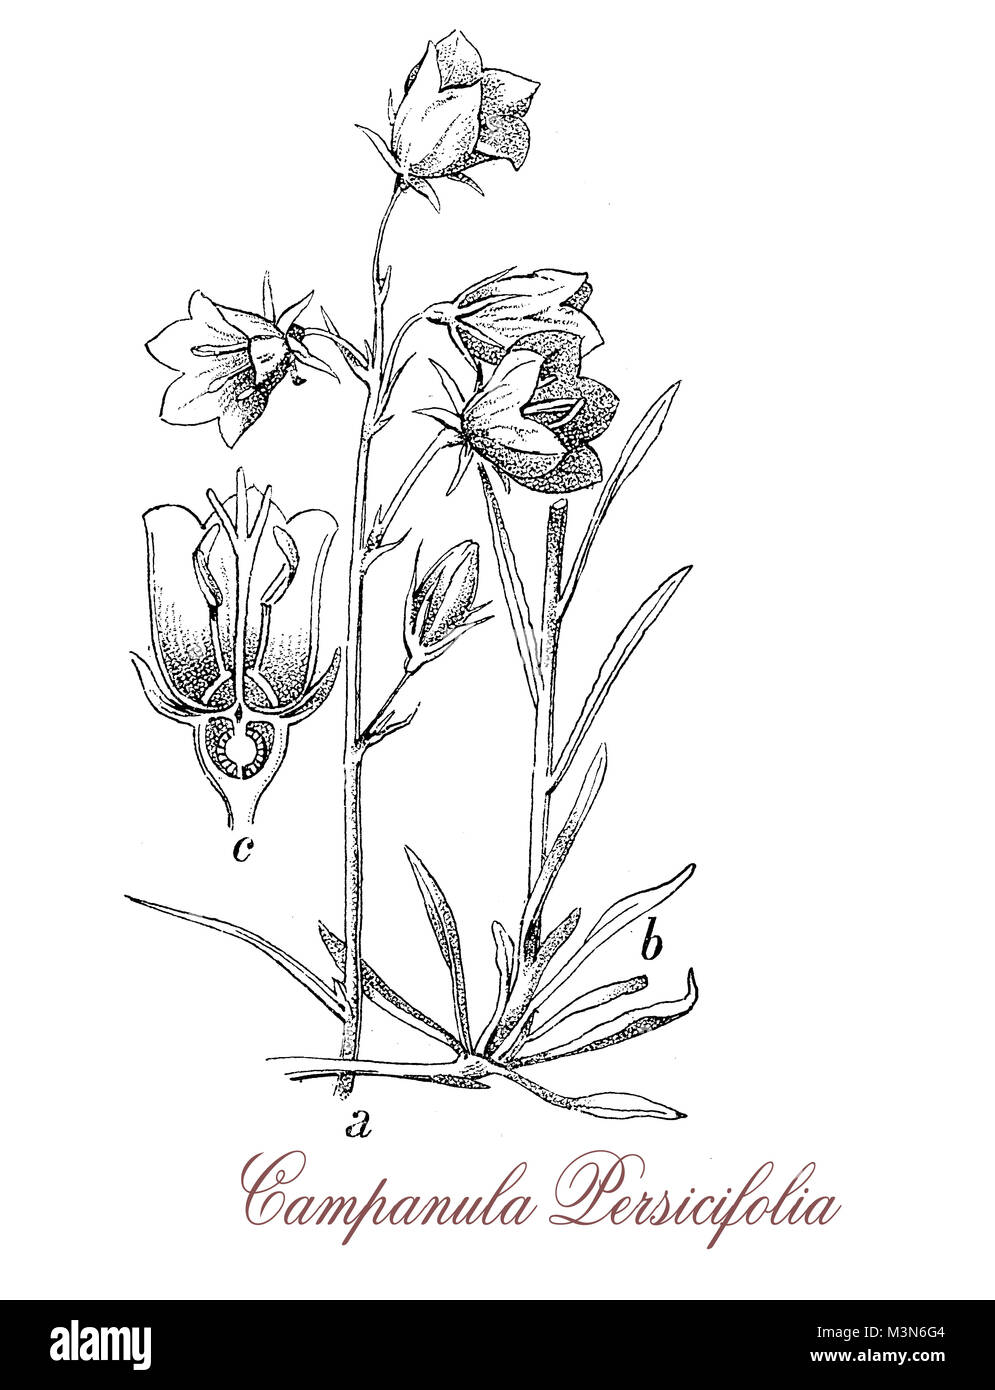 vintage engraving of campanula persicifolia or peach-leaved bellflower, flowering plant common in the Alps, with - Stock Image